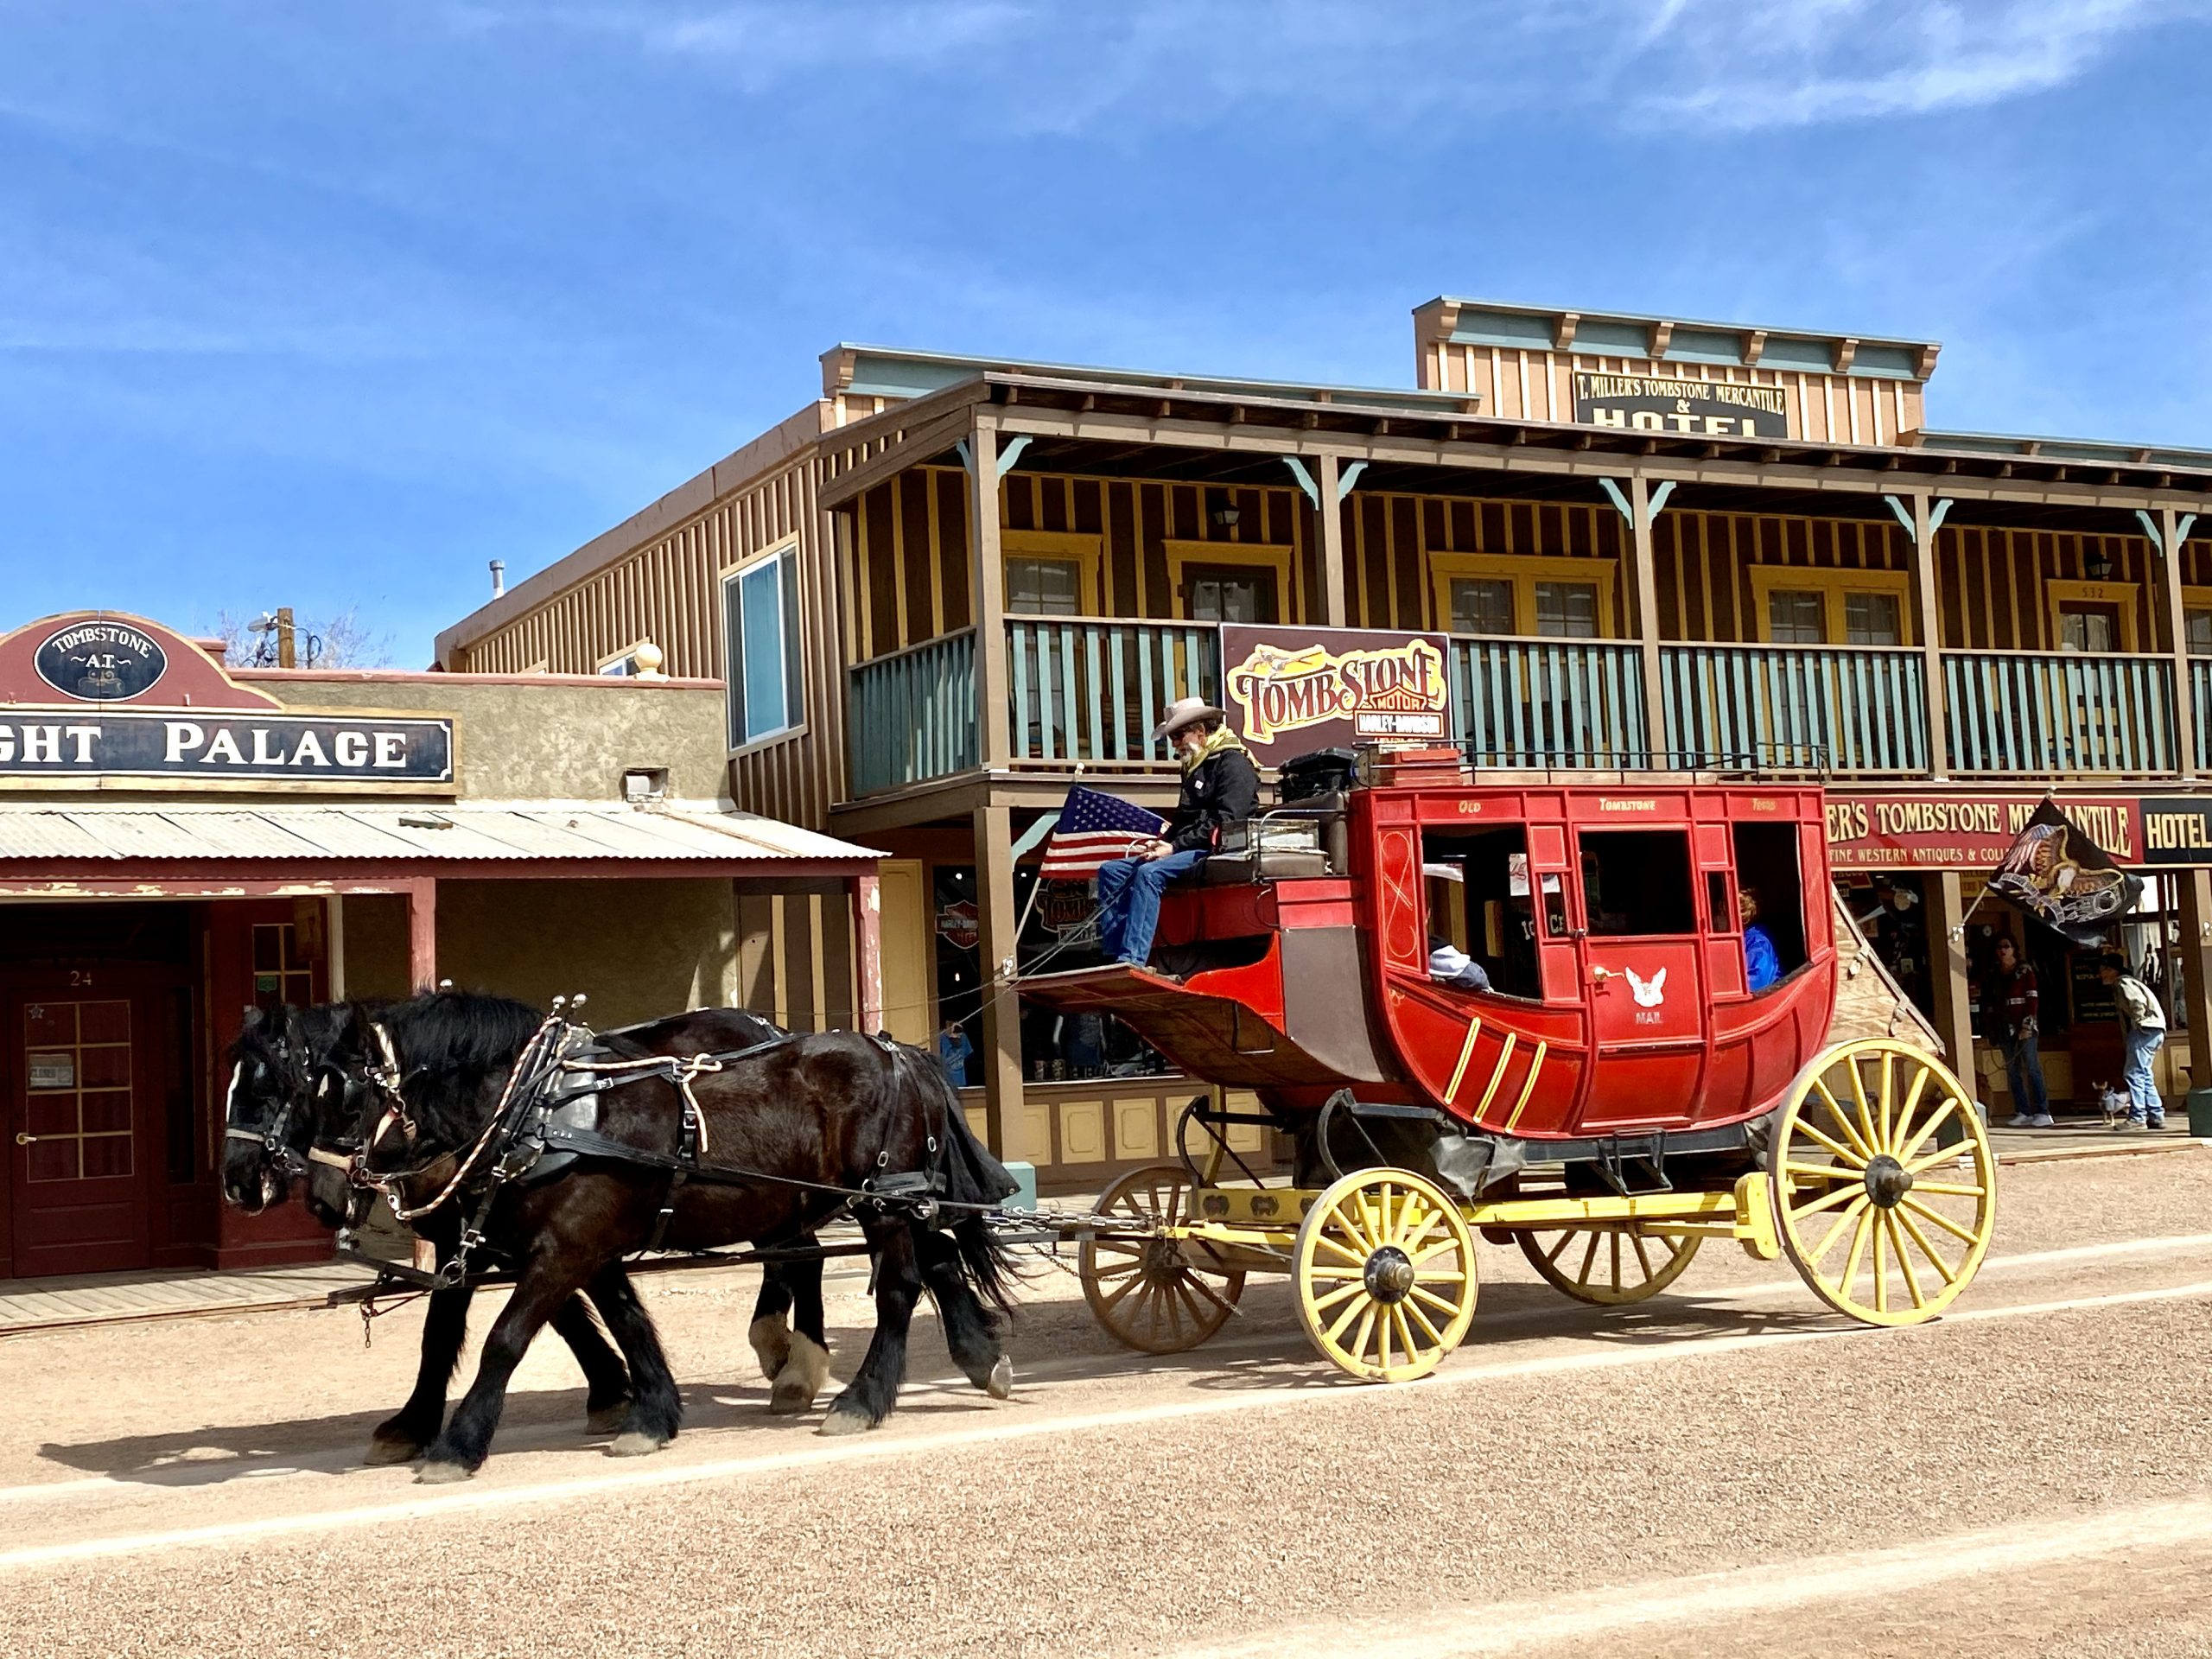 Exploring Arizona's Old West by Car